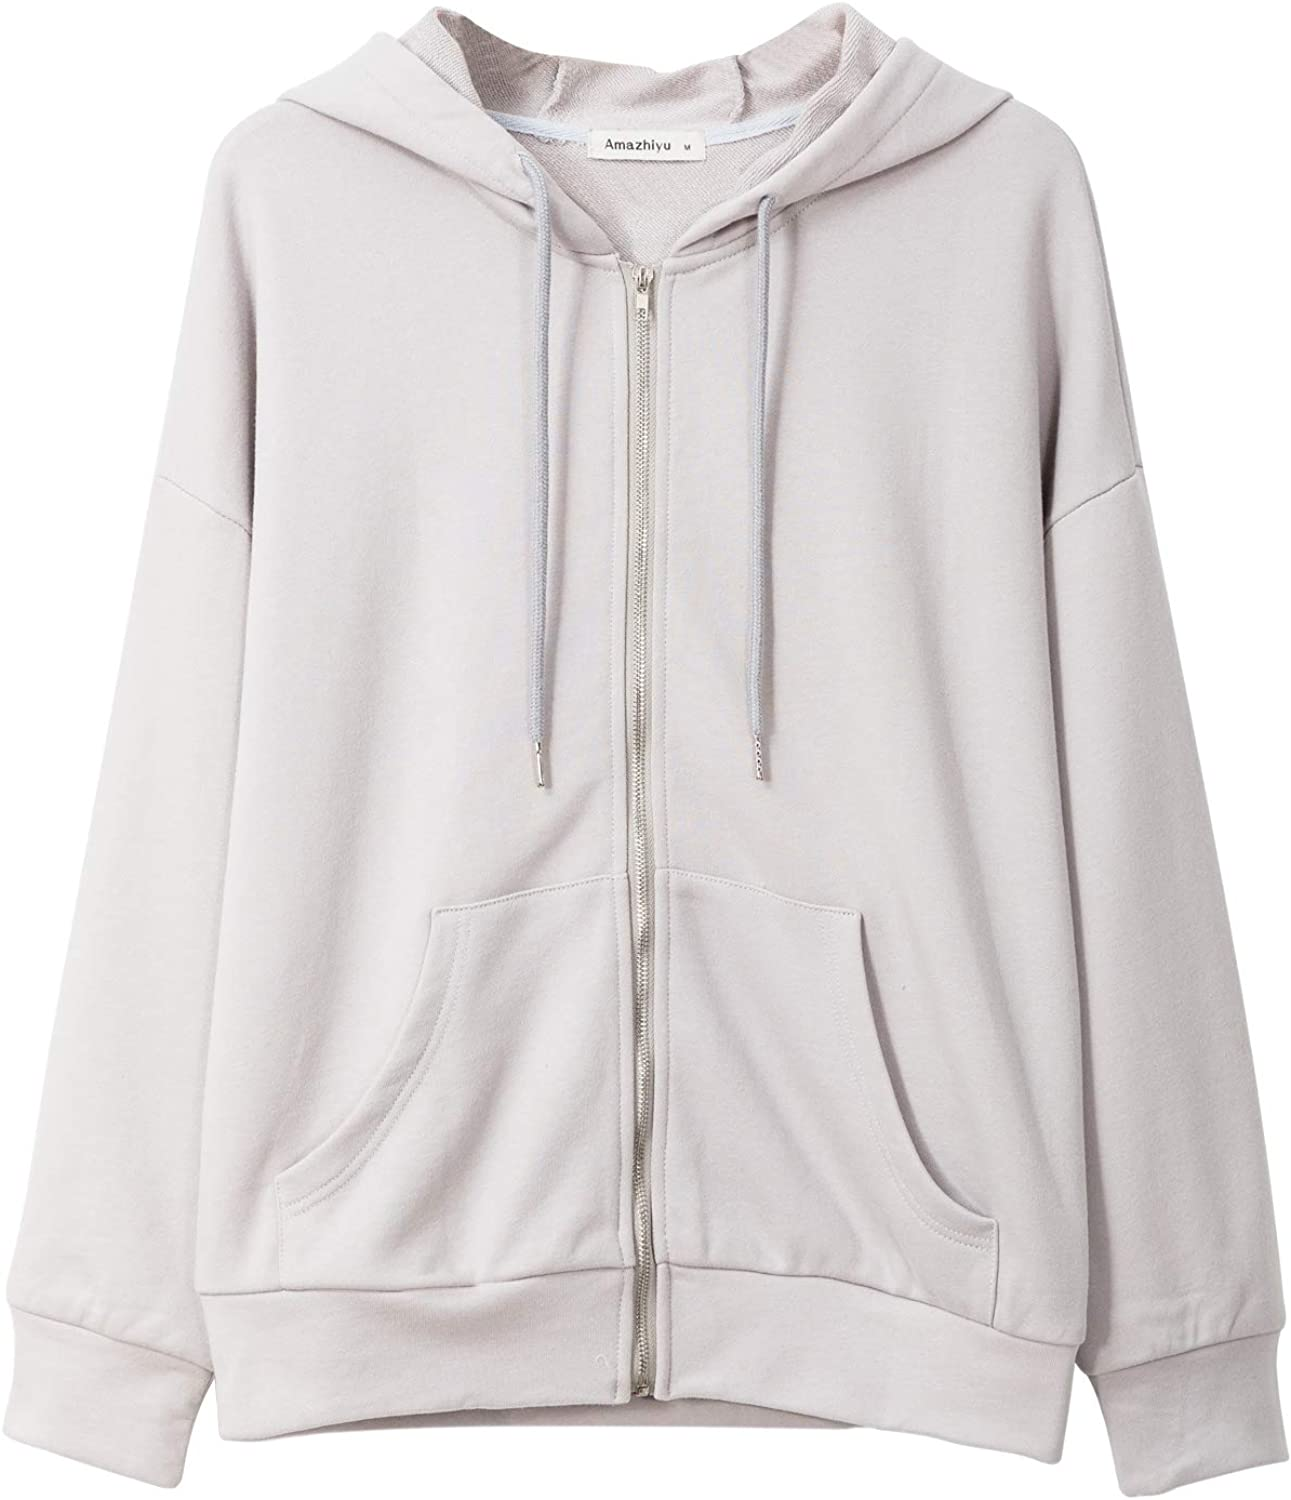 Amazhiyu Women Drawstring Full Zip Hoodies with Pockets Thick Cotton Sweatshirt for Winter Warm